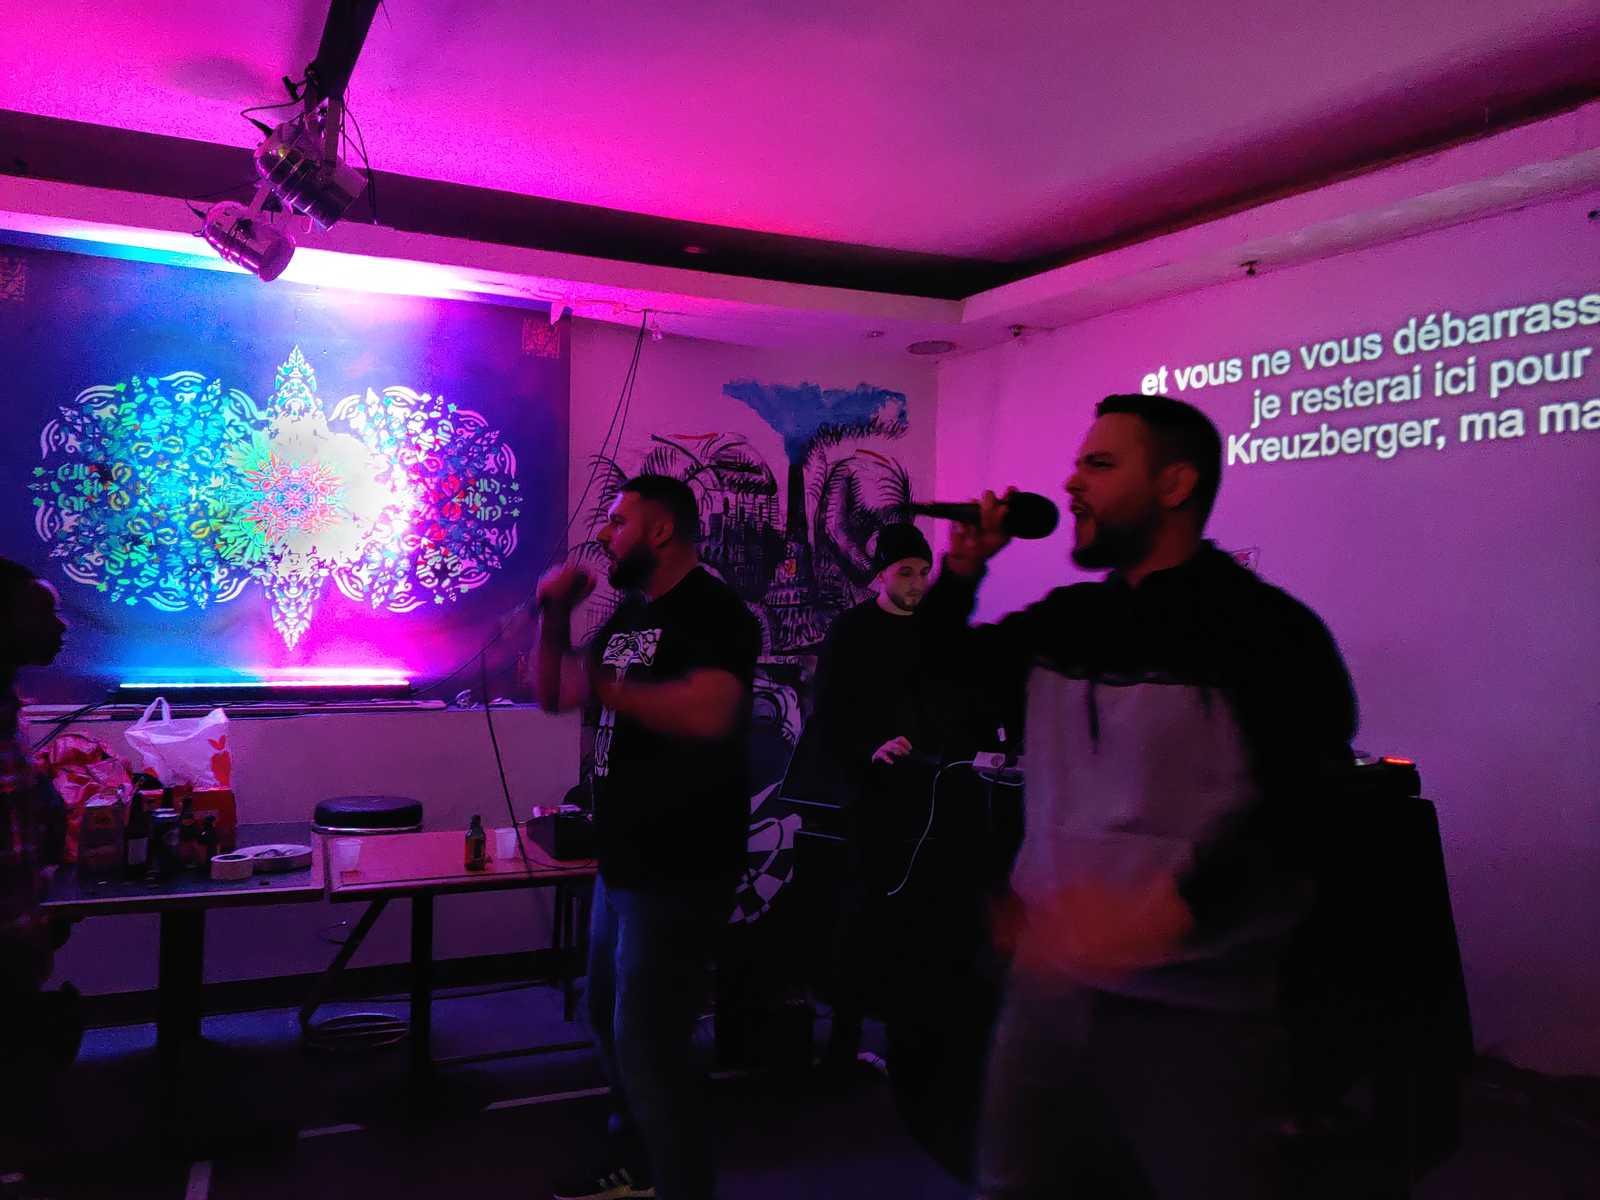 The german Rapper PTK performing in the Aubergine 3000. Behind the translations of his lyrics made by Urbanauth can be percieved, while on the left side a fractalic urban art design by Erwa.One is illuminated in different lights.